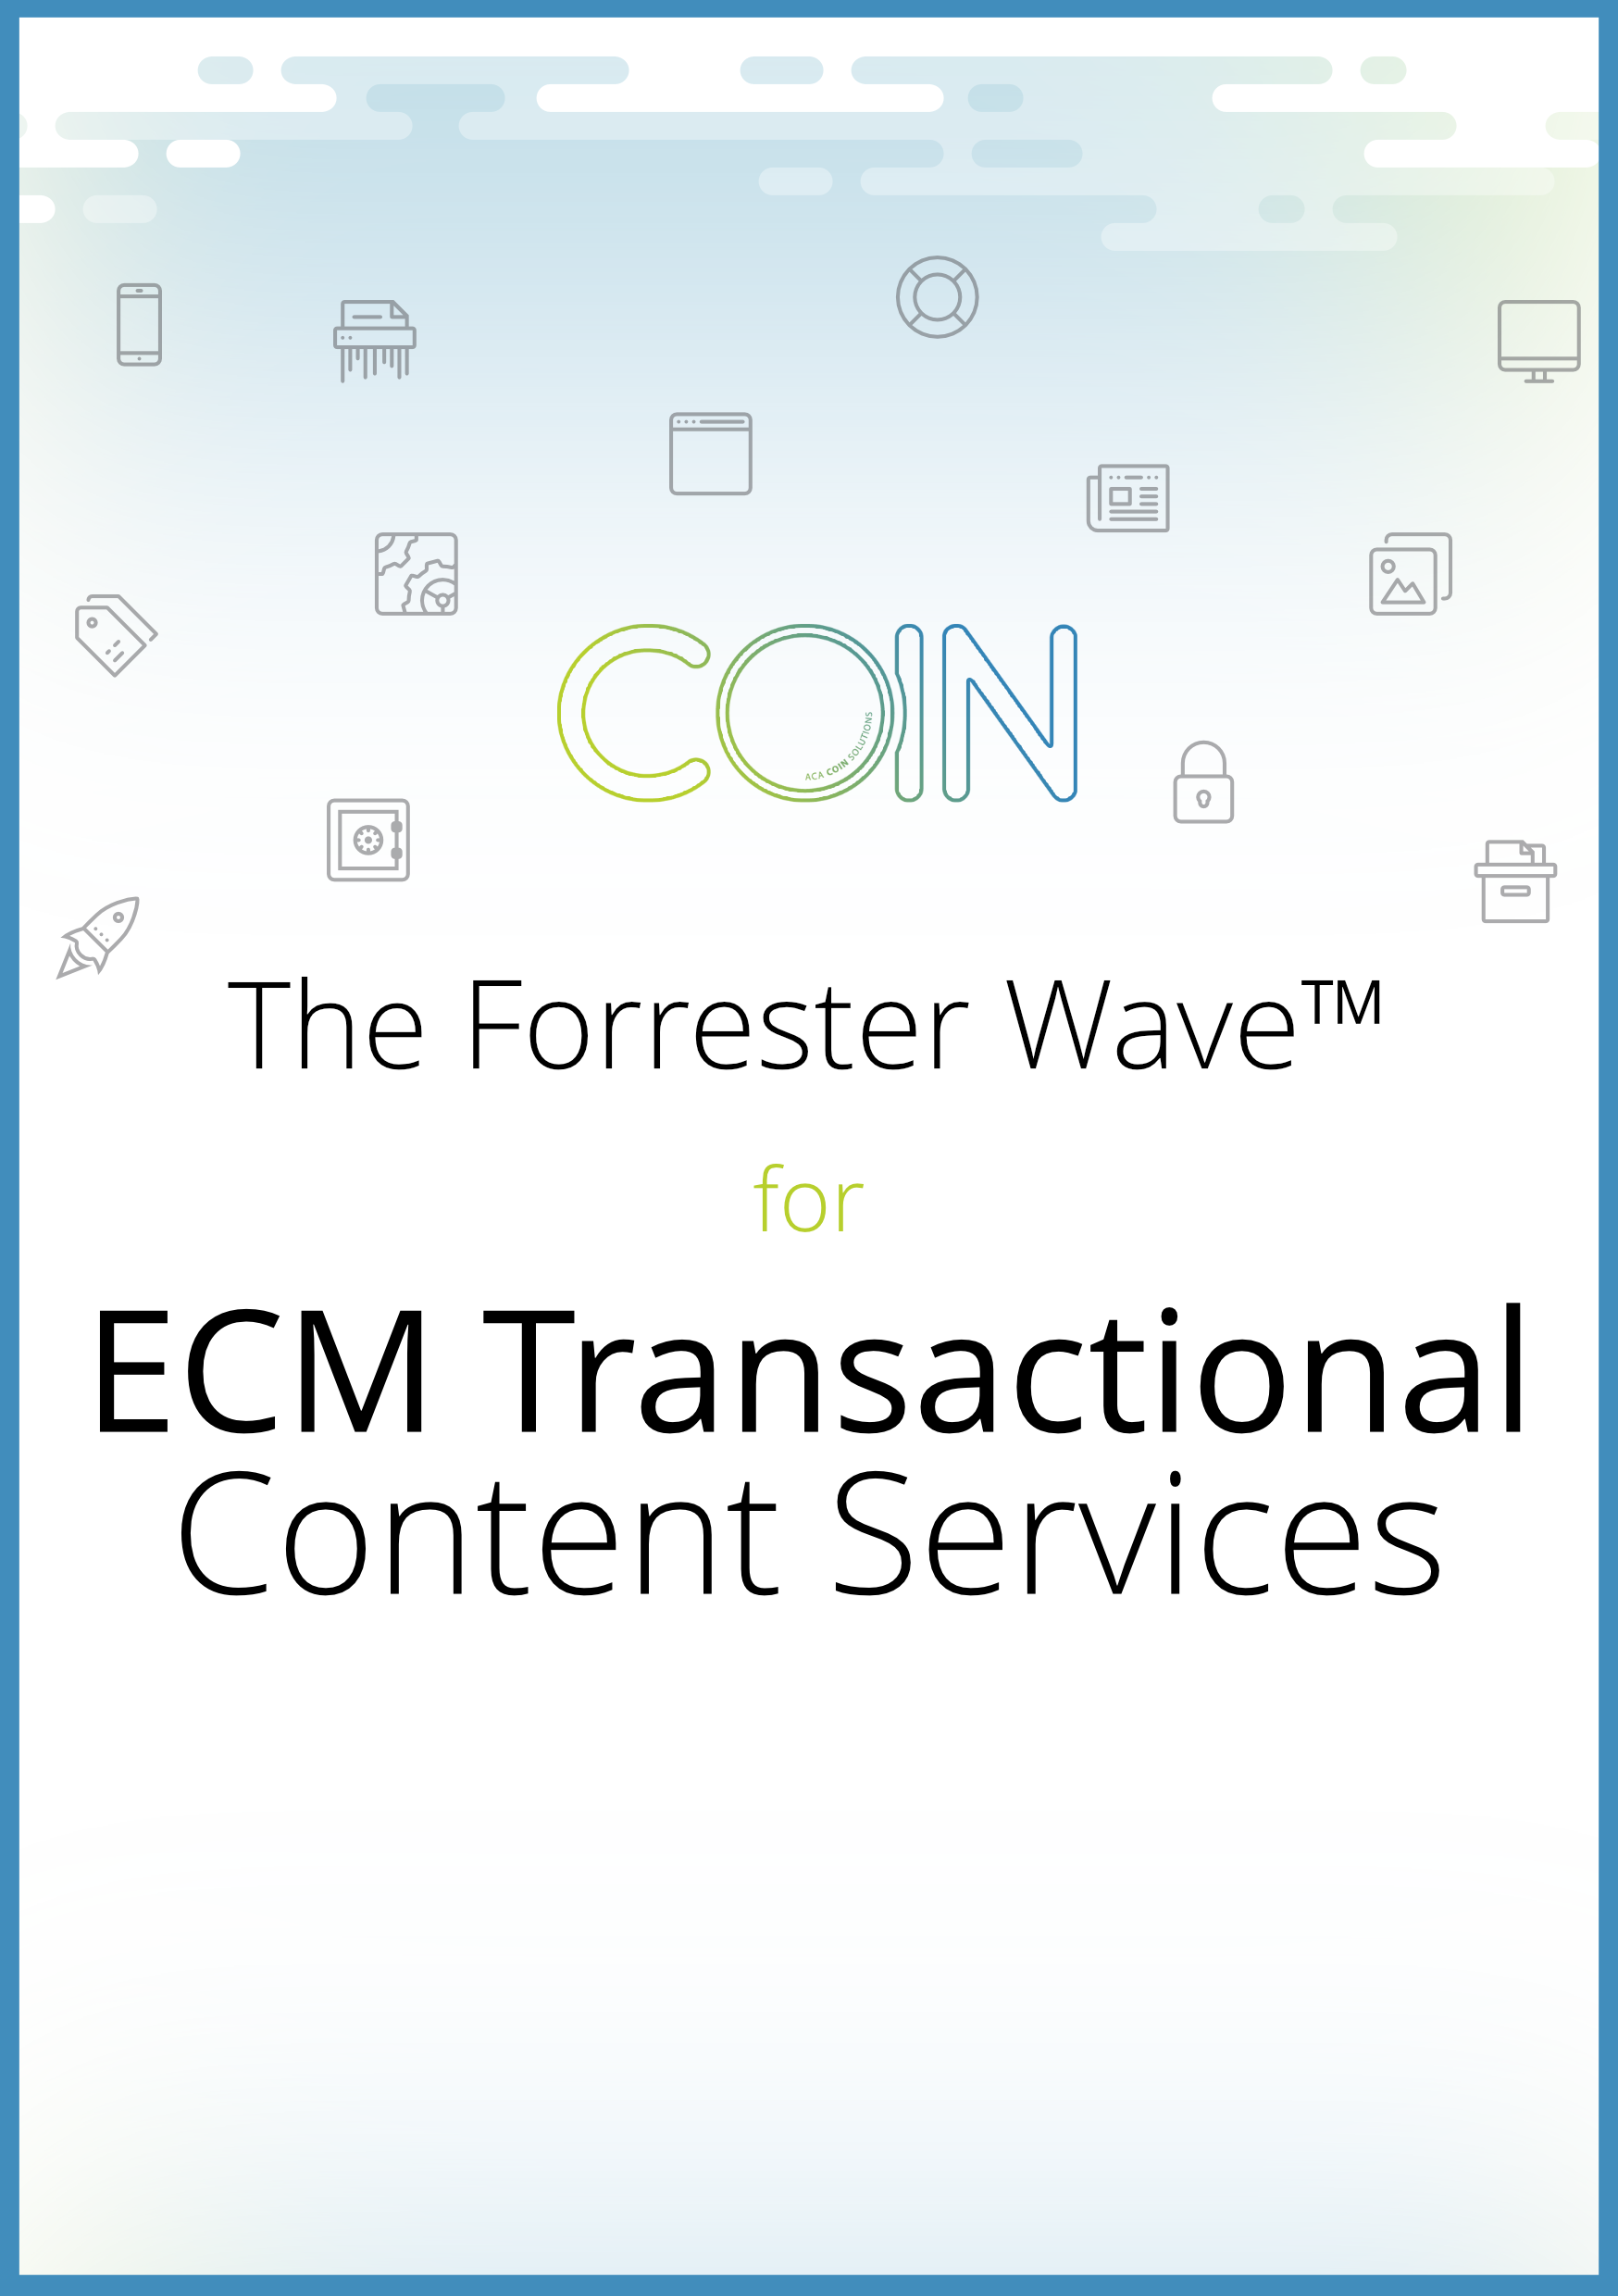 The Forrester Wave™ for ECM Transactional Content Services